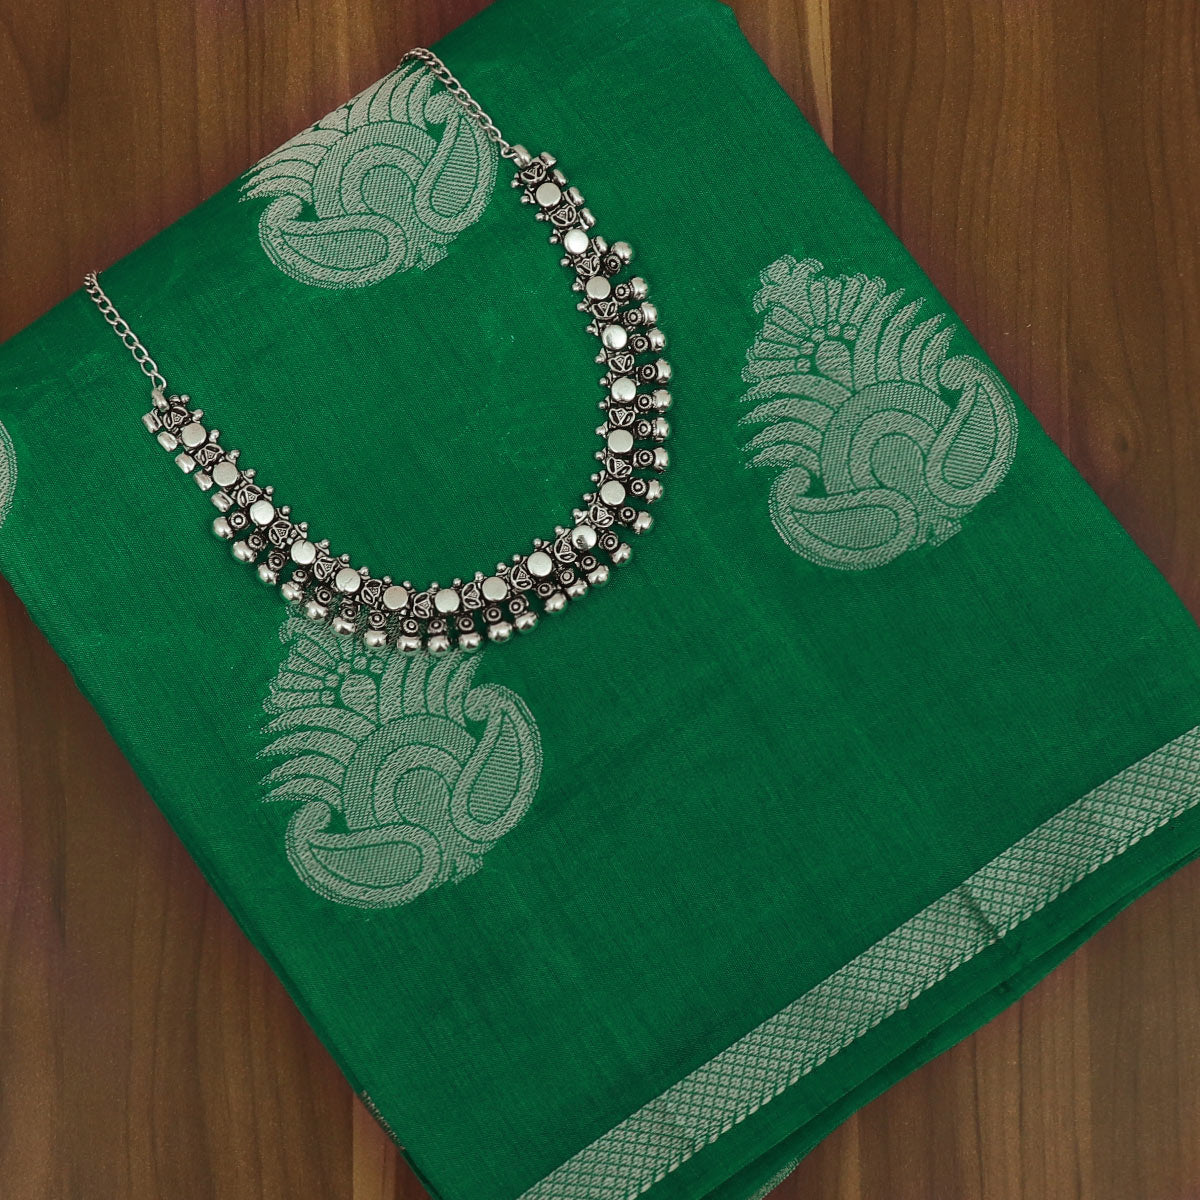 Raw Silk Saree Dark Green with Simple border and jewel